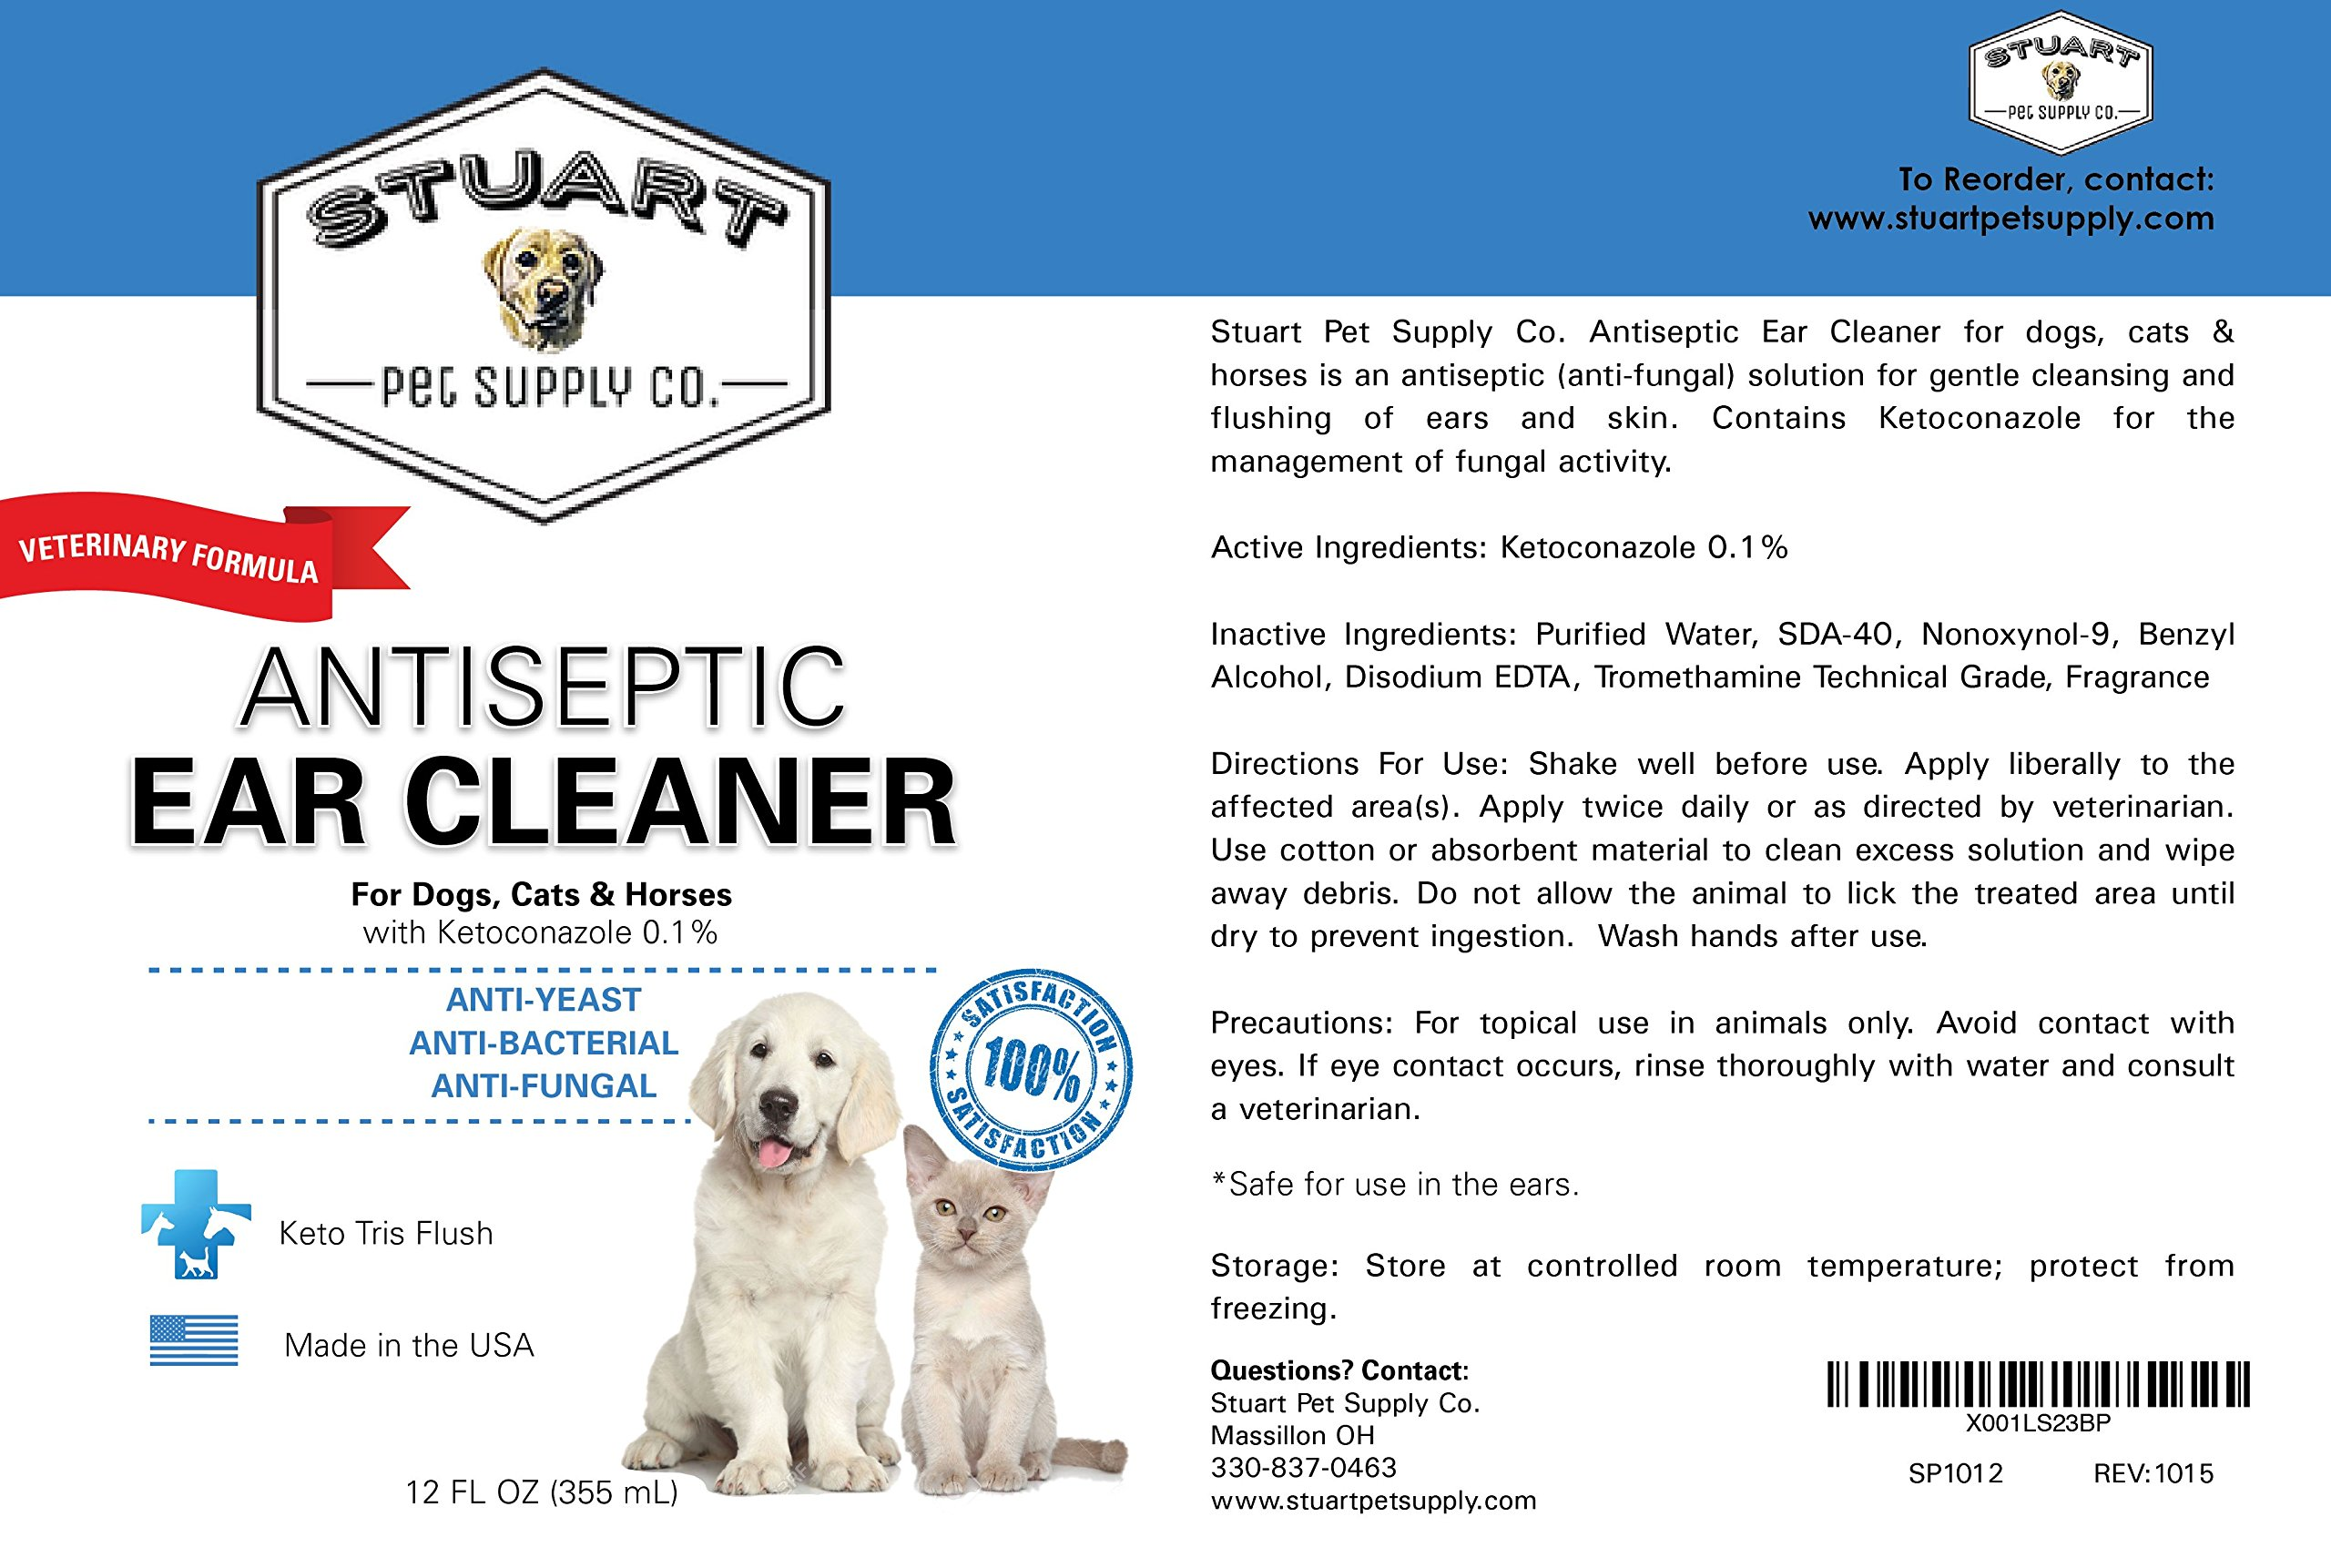 Stuart Pet Supply Co.. Antiseptic Ear Infection Treatment For Dogs-Veterinary Formulated-Veterinary Recommended For Head Shaking, Itching, Discharge & Smelly Ears 100% 12oz. by Stuart Pet Supply Co. (Image #6)